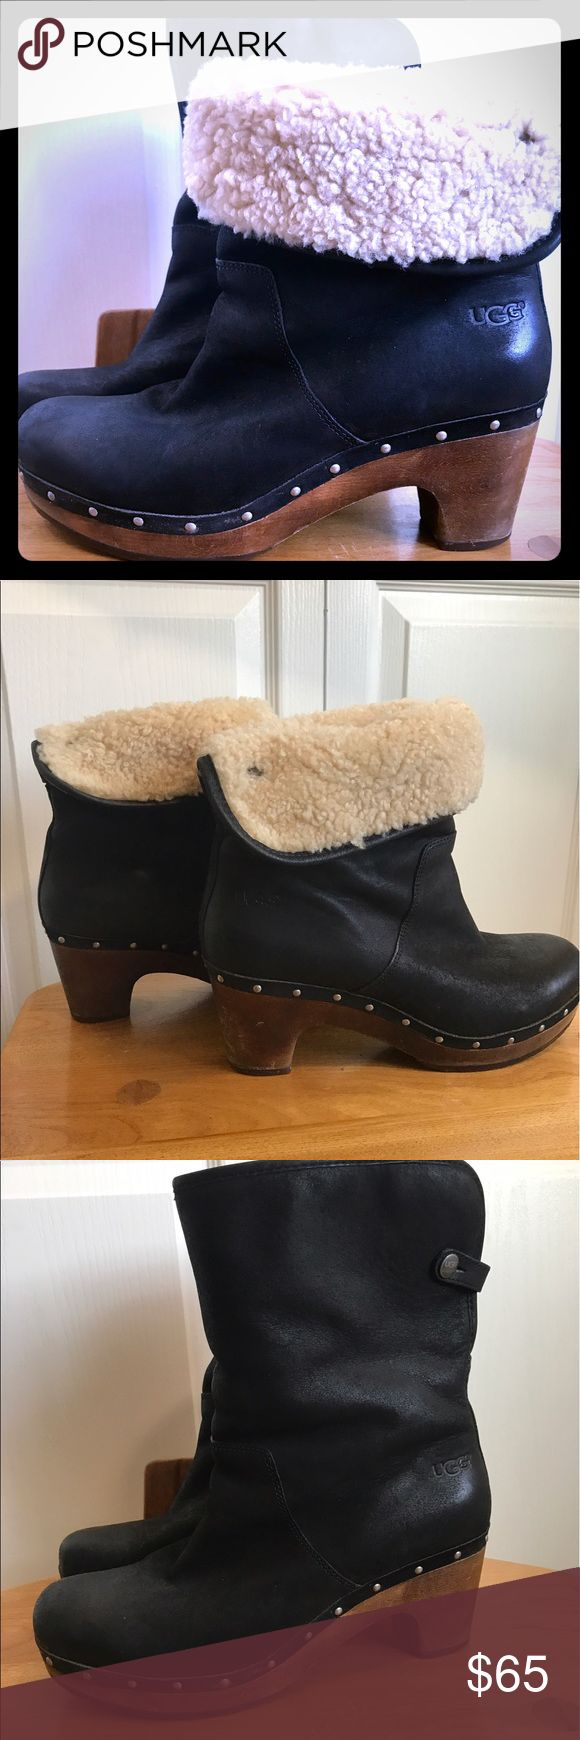 """UGG Lynnea Boots Super awesome UGG Boots. Same UGG comfort but in a dressy version. Can be worn folded down or left up. 2.5"""" heel height. Shaft approximately 8"""". The only wear is on wooden parts and a little on bottom. UGG Shoes Winter & Rain Boots"""